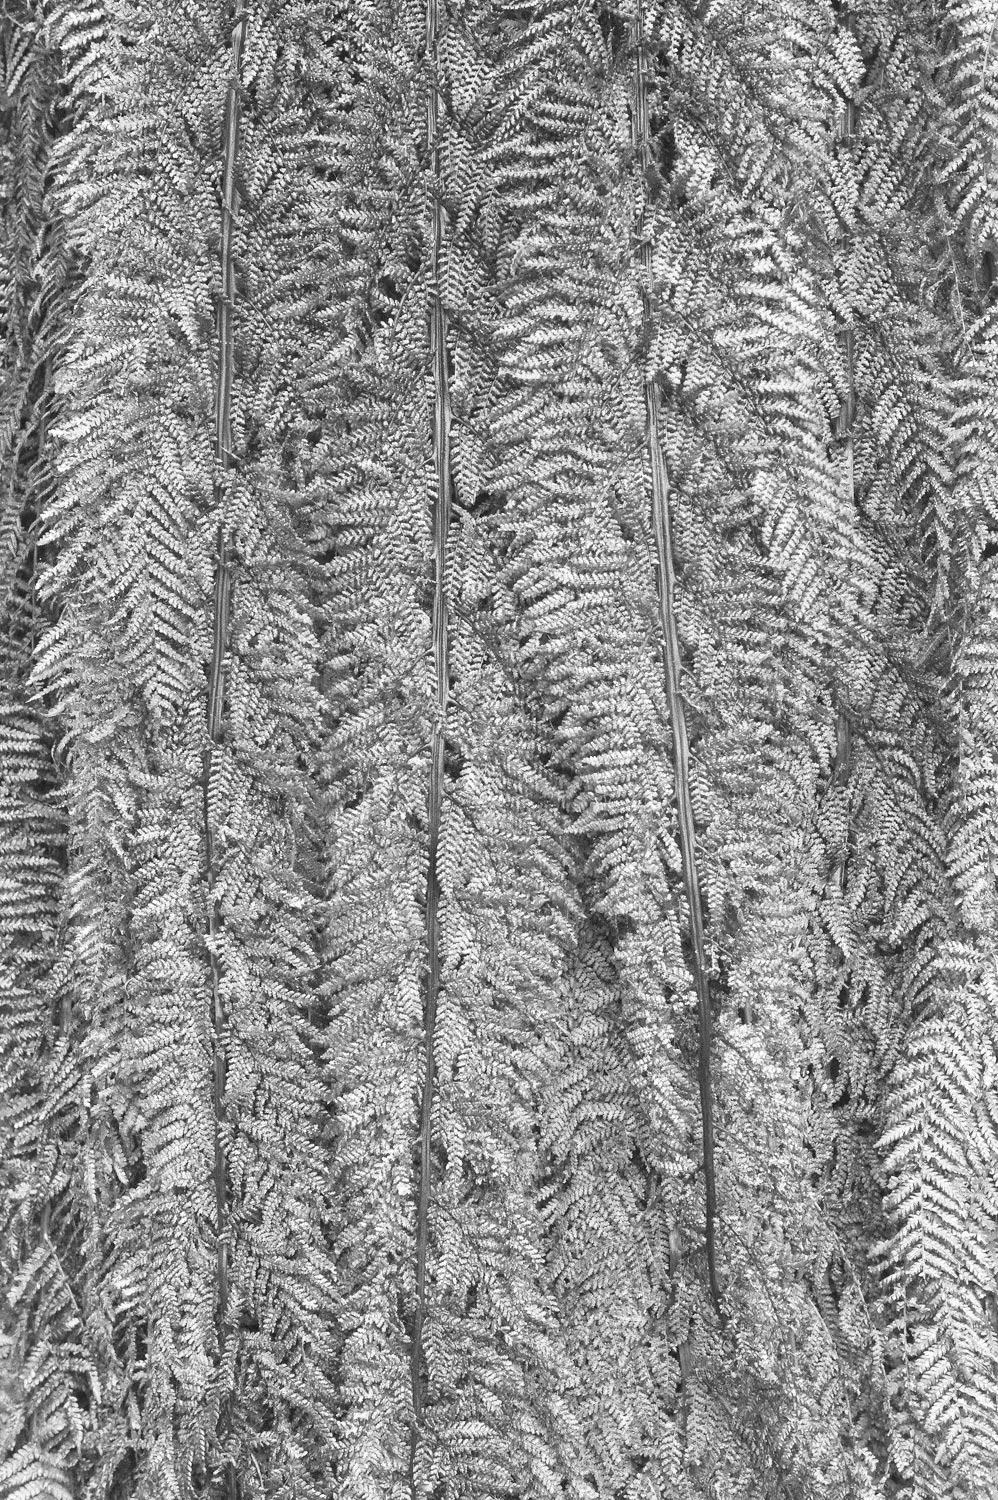 Warren-Hinder-LR-Tree-Fern-Detail-Prince-Henry.jpg